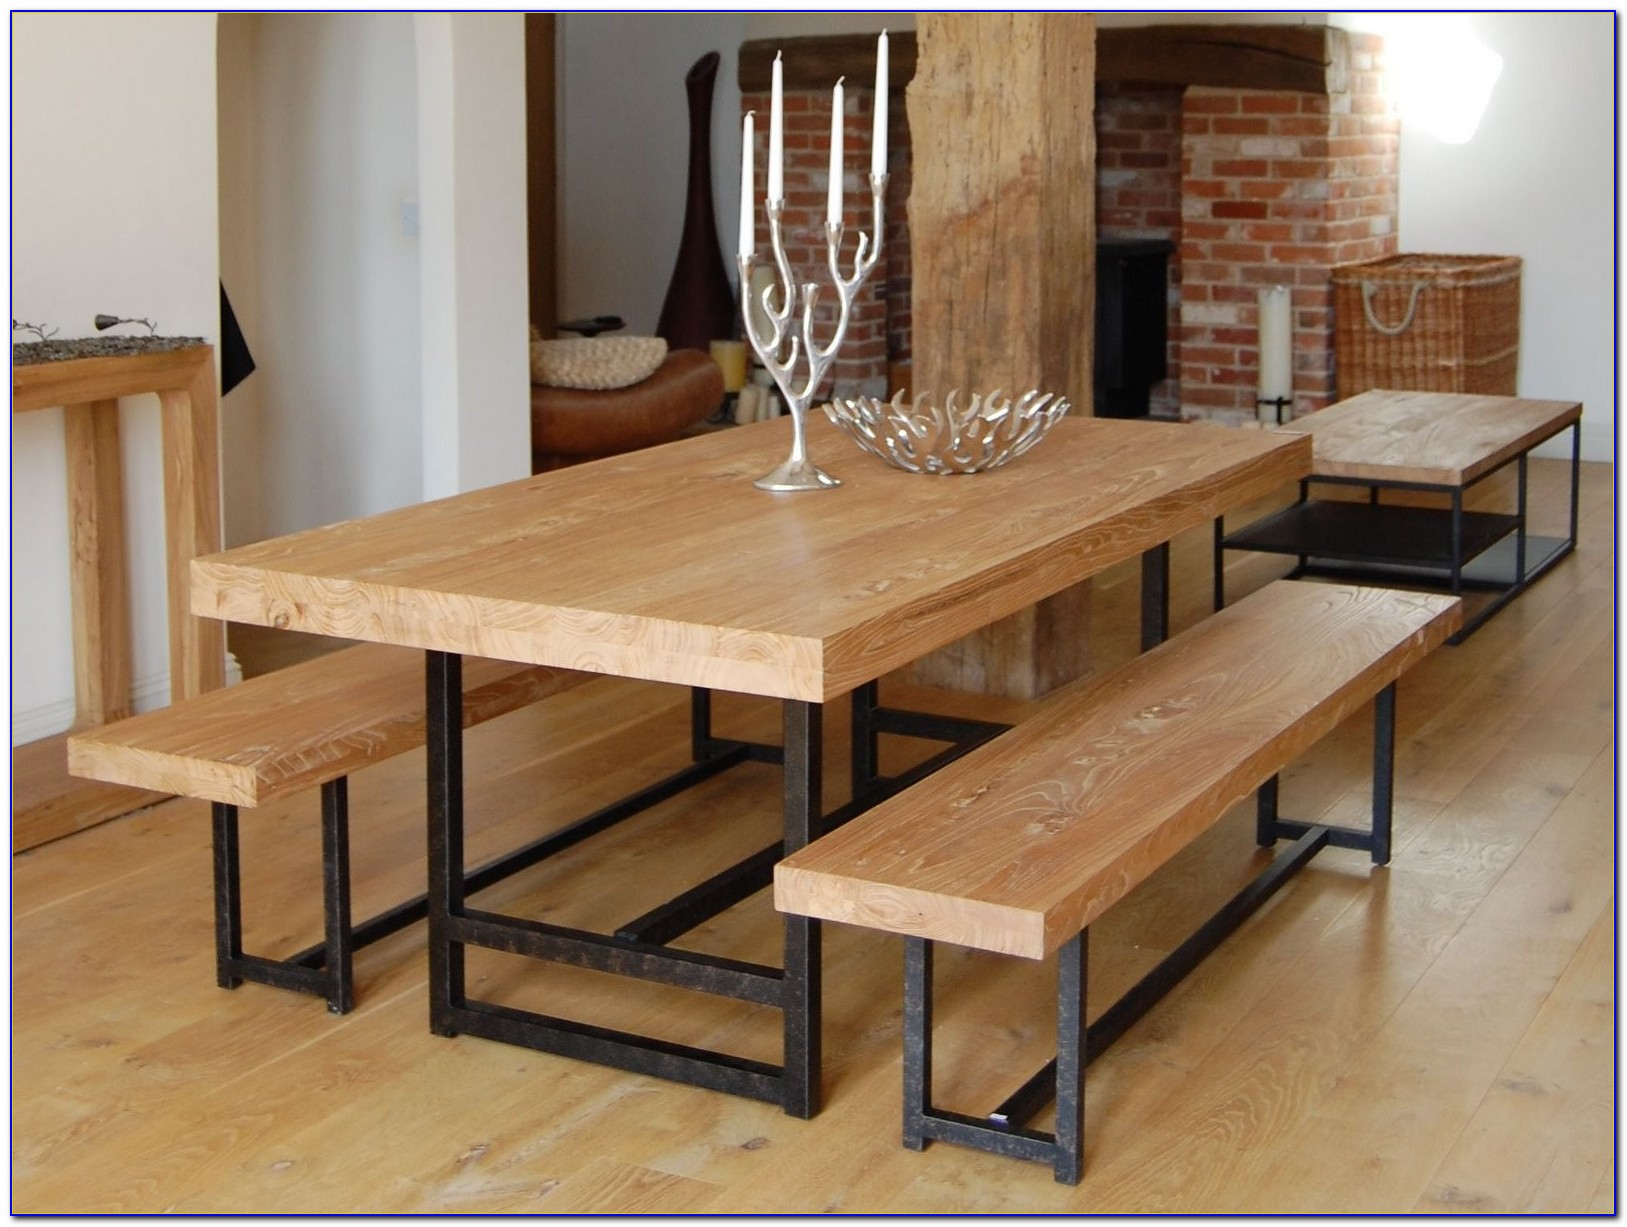 Wood Benches For Dining Tables